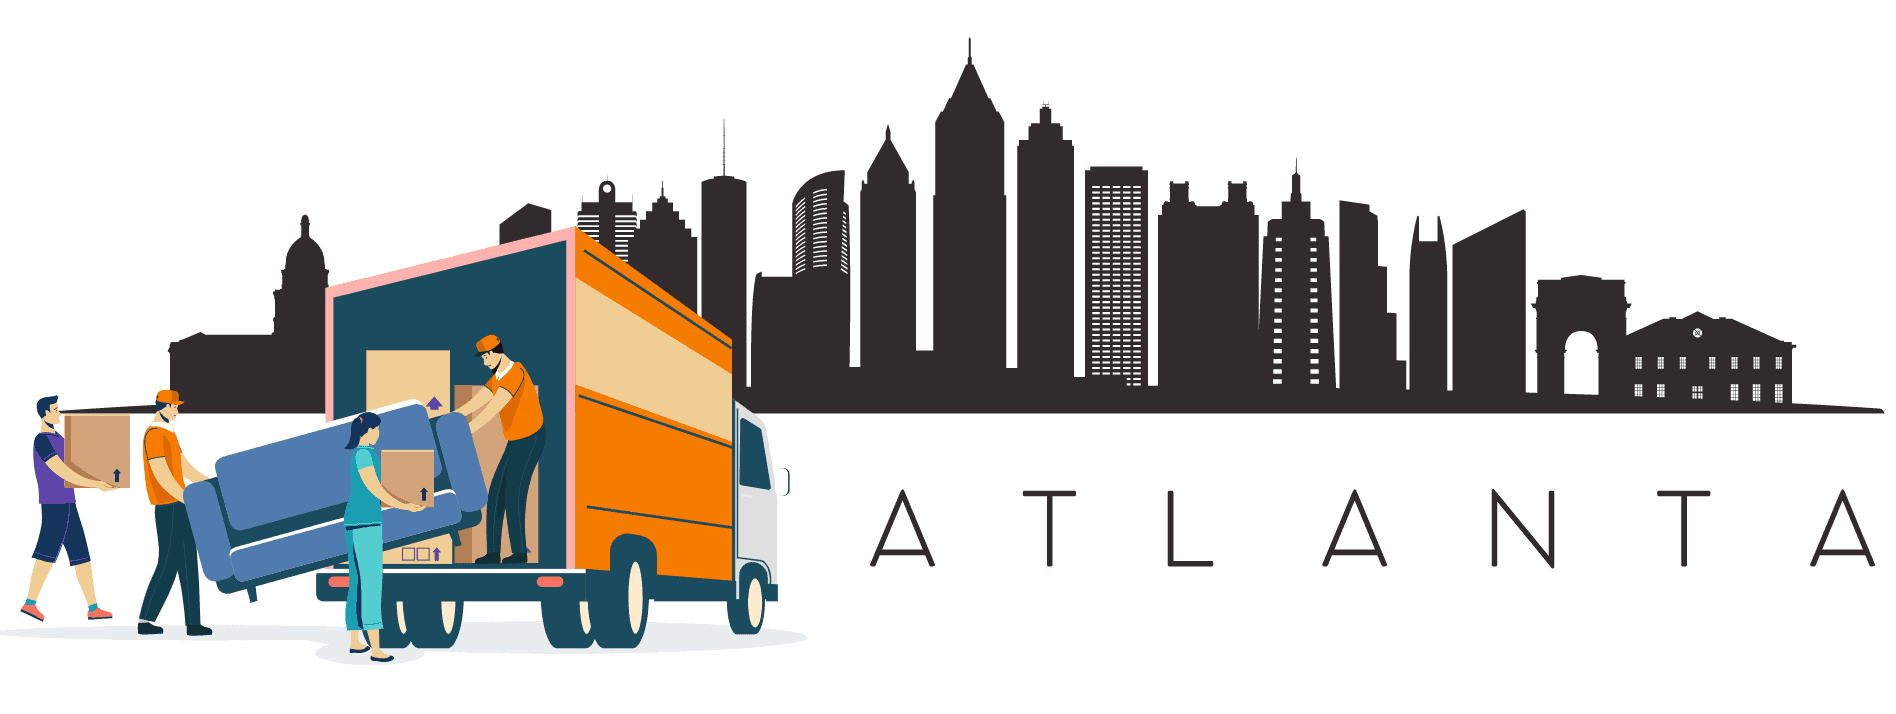 Complete Guide for Moving to Atlanta in 2021